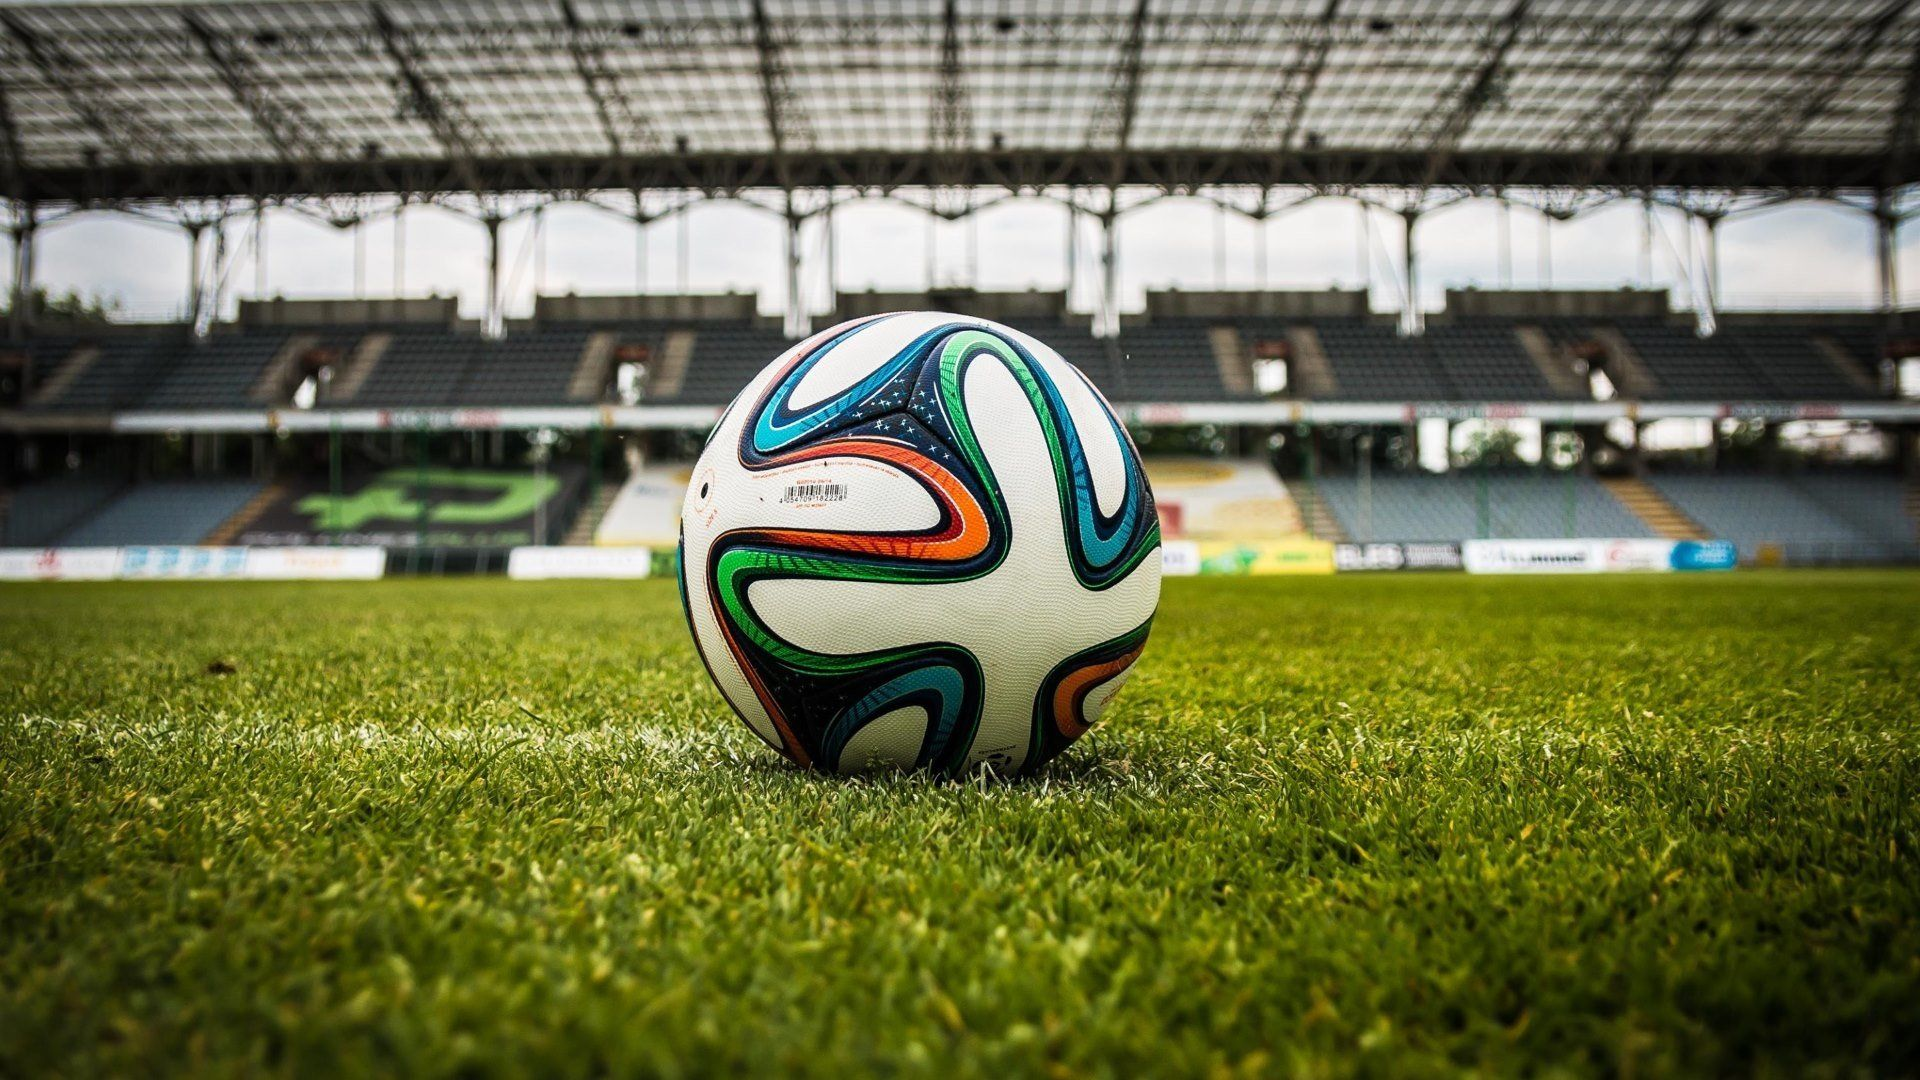 4k Soccer Wallpapers Top Free 4k Soccer Backgrounds Wallpaperaccess